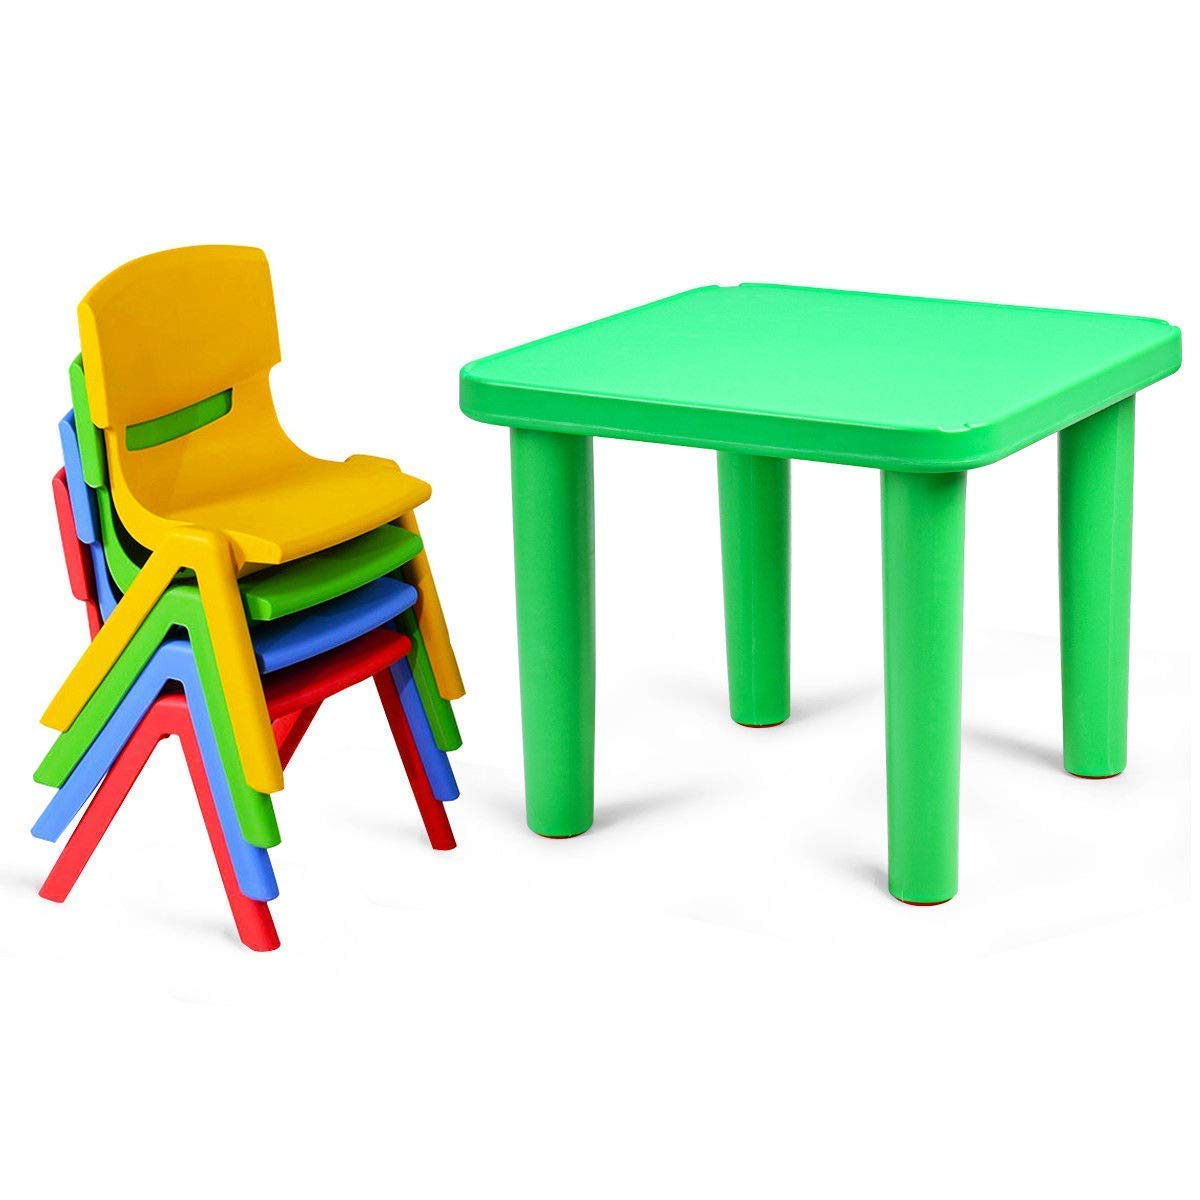 Costzon Kids Plastic Table, Chair Learn and Play Activity Set, School Home Furniture (Square Table & Chair Set)